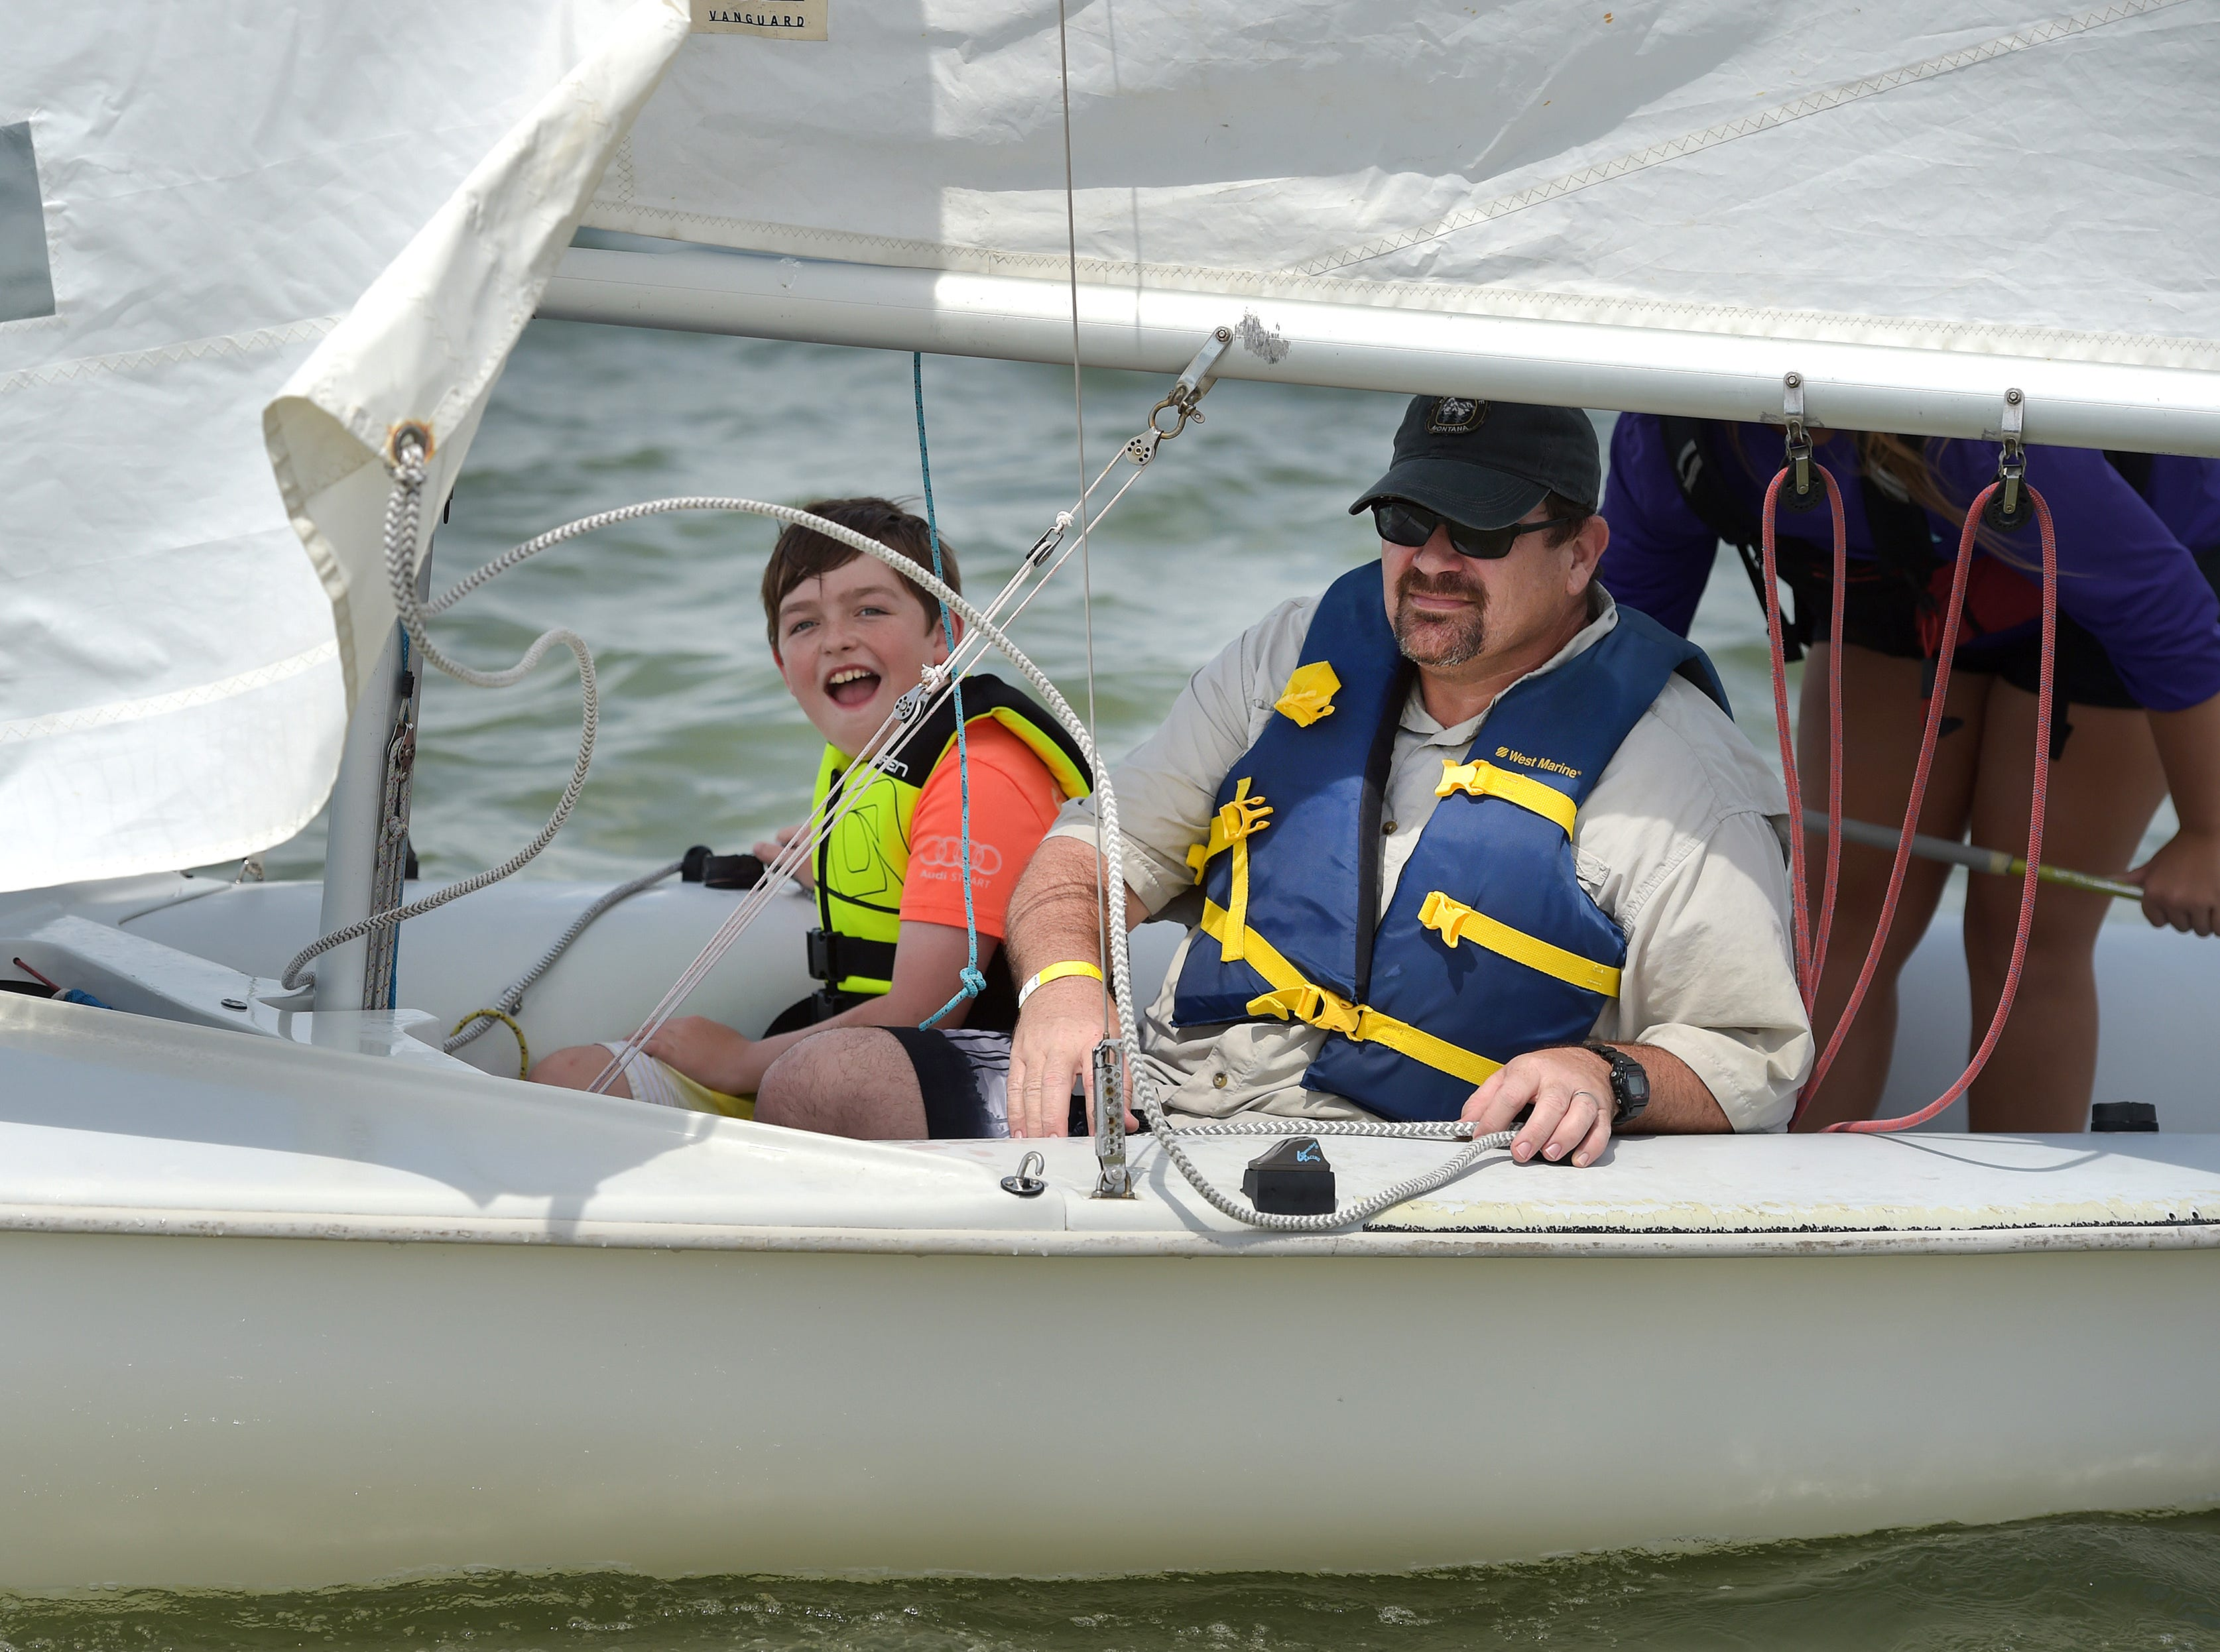 "Xavier Appleton, 10 (left), and his father Bill Appleton, of Jensen Beach, enjoy the experience of sailing on a 420 class boat together during 2019 Waterfest on Sunday, May 5, 2019, at Jaycee Park in Fort Pierce. ""It's fun because we get to pull in the line so it turns, feeling it [water], touching buoys,"" Xavier said about the sailing experience. The event, co-sponsored by the Fort Pierce Yacht Club, City of Fort Pierce, Treasure Coast Youth Sailing Foundation and the Fort Pierce Jazz and Blues Society, introduces the experience of being on the water with sailing, kayaking, canoeing, paddle boarding, and other water activities in the Indian River Lagoon for free. ""Today is about giving back to the community, showing all the residents in St. Lucie County [and beyond] just what our natural resources and what we have to offer,"" said Charlie Hayek, secretary of TCYSF in Fort Pierce."